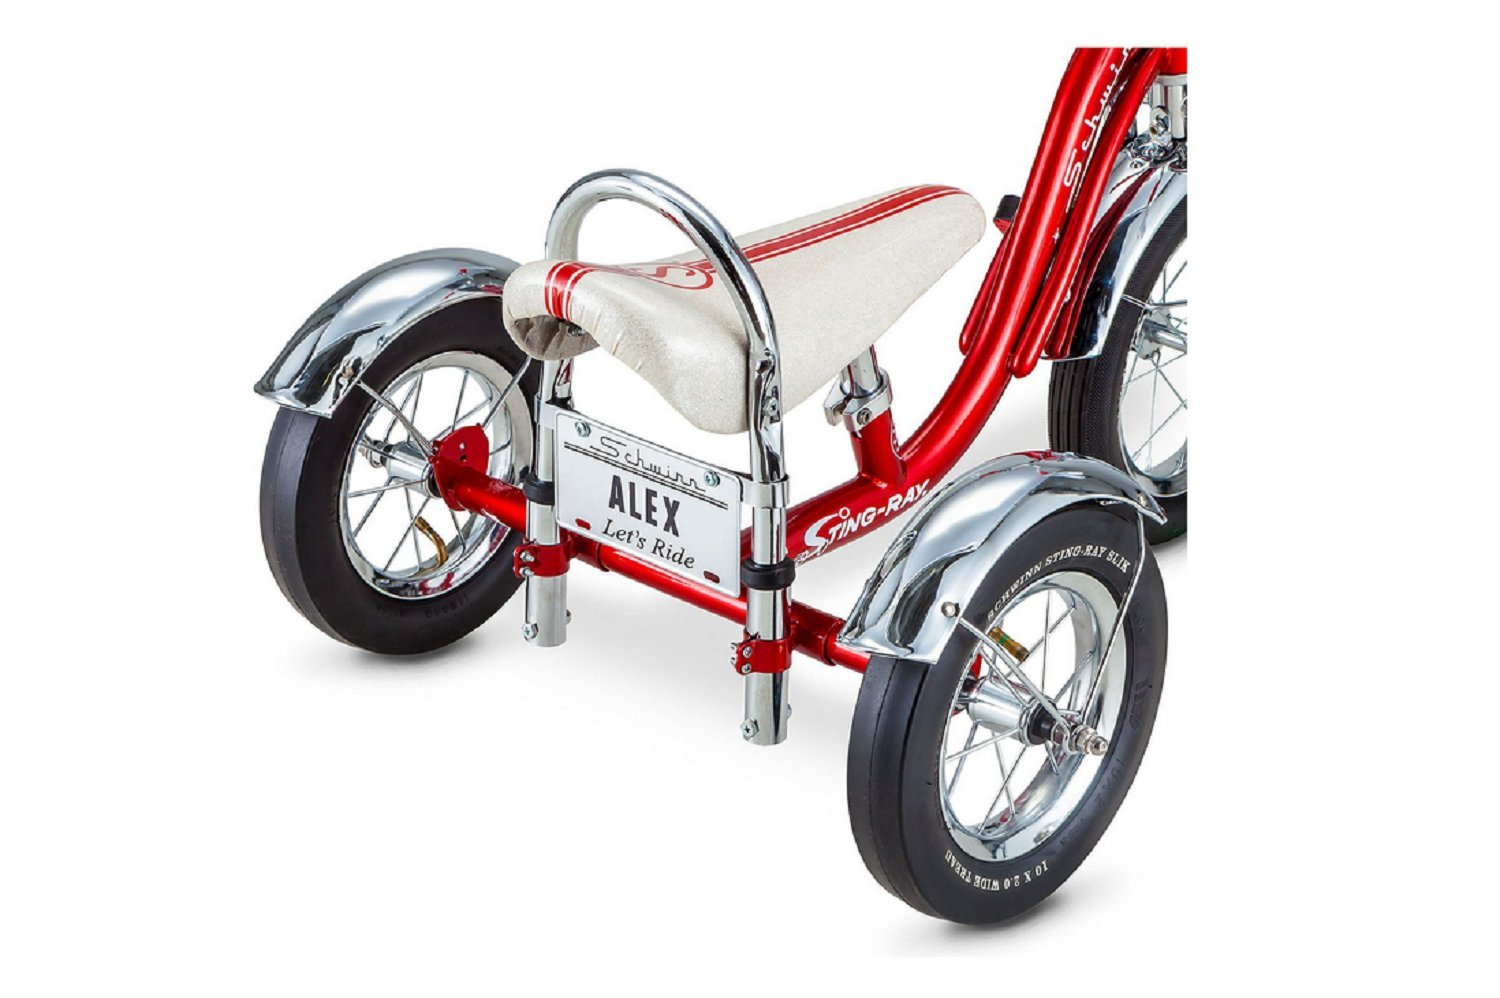 Schwinn LIL STING-RAY Super Deluxe Tricycle, Toddler Trike